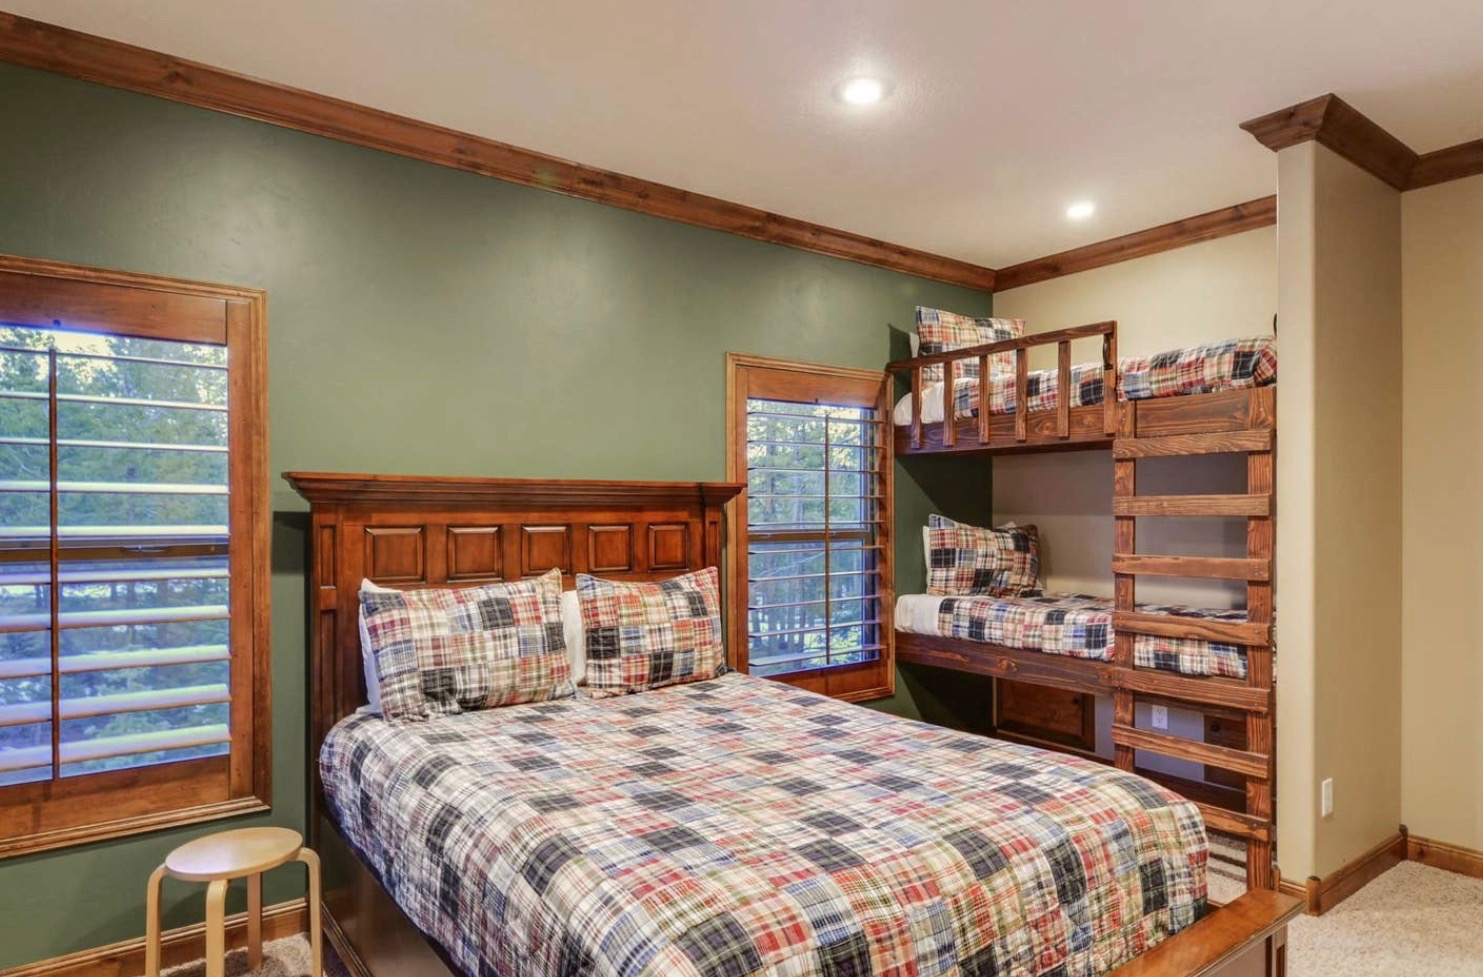 Family Suite: Queen Bed, Bunk Bed, Private Bathroom.  $3,100